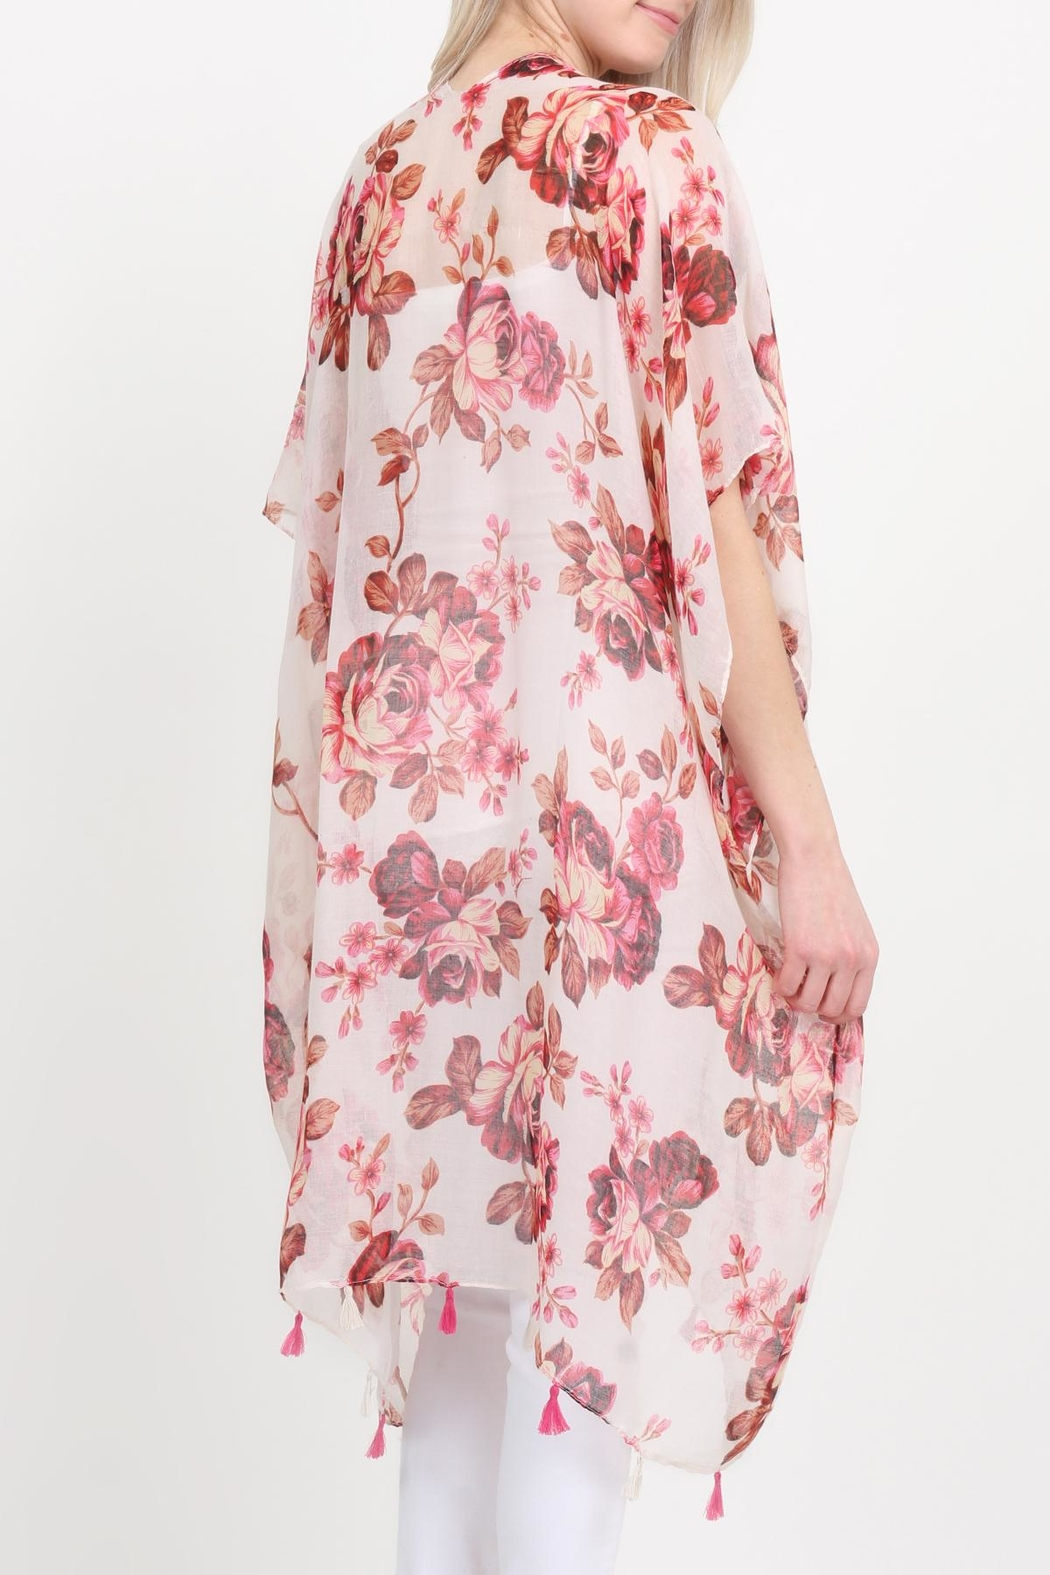 Riah Fashion Open-Front Knee-Length Floral-Cardigan - Back Cropped Image